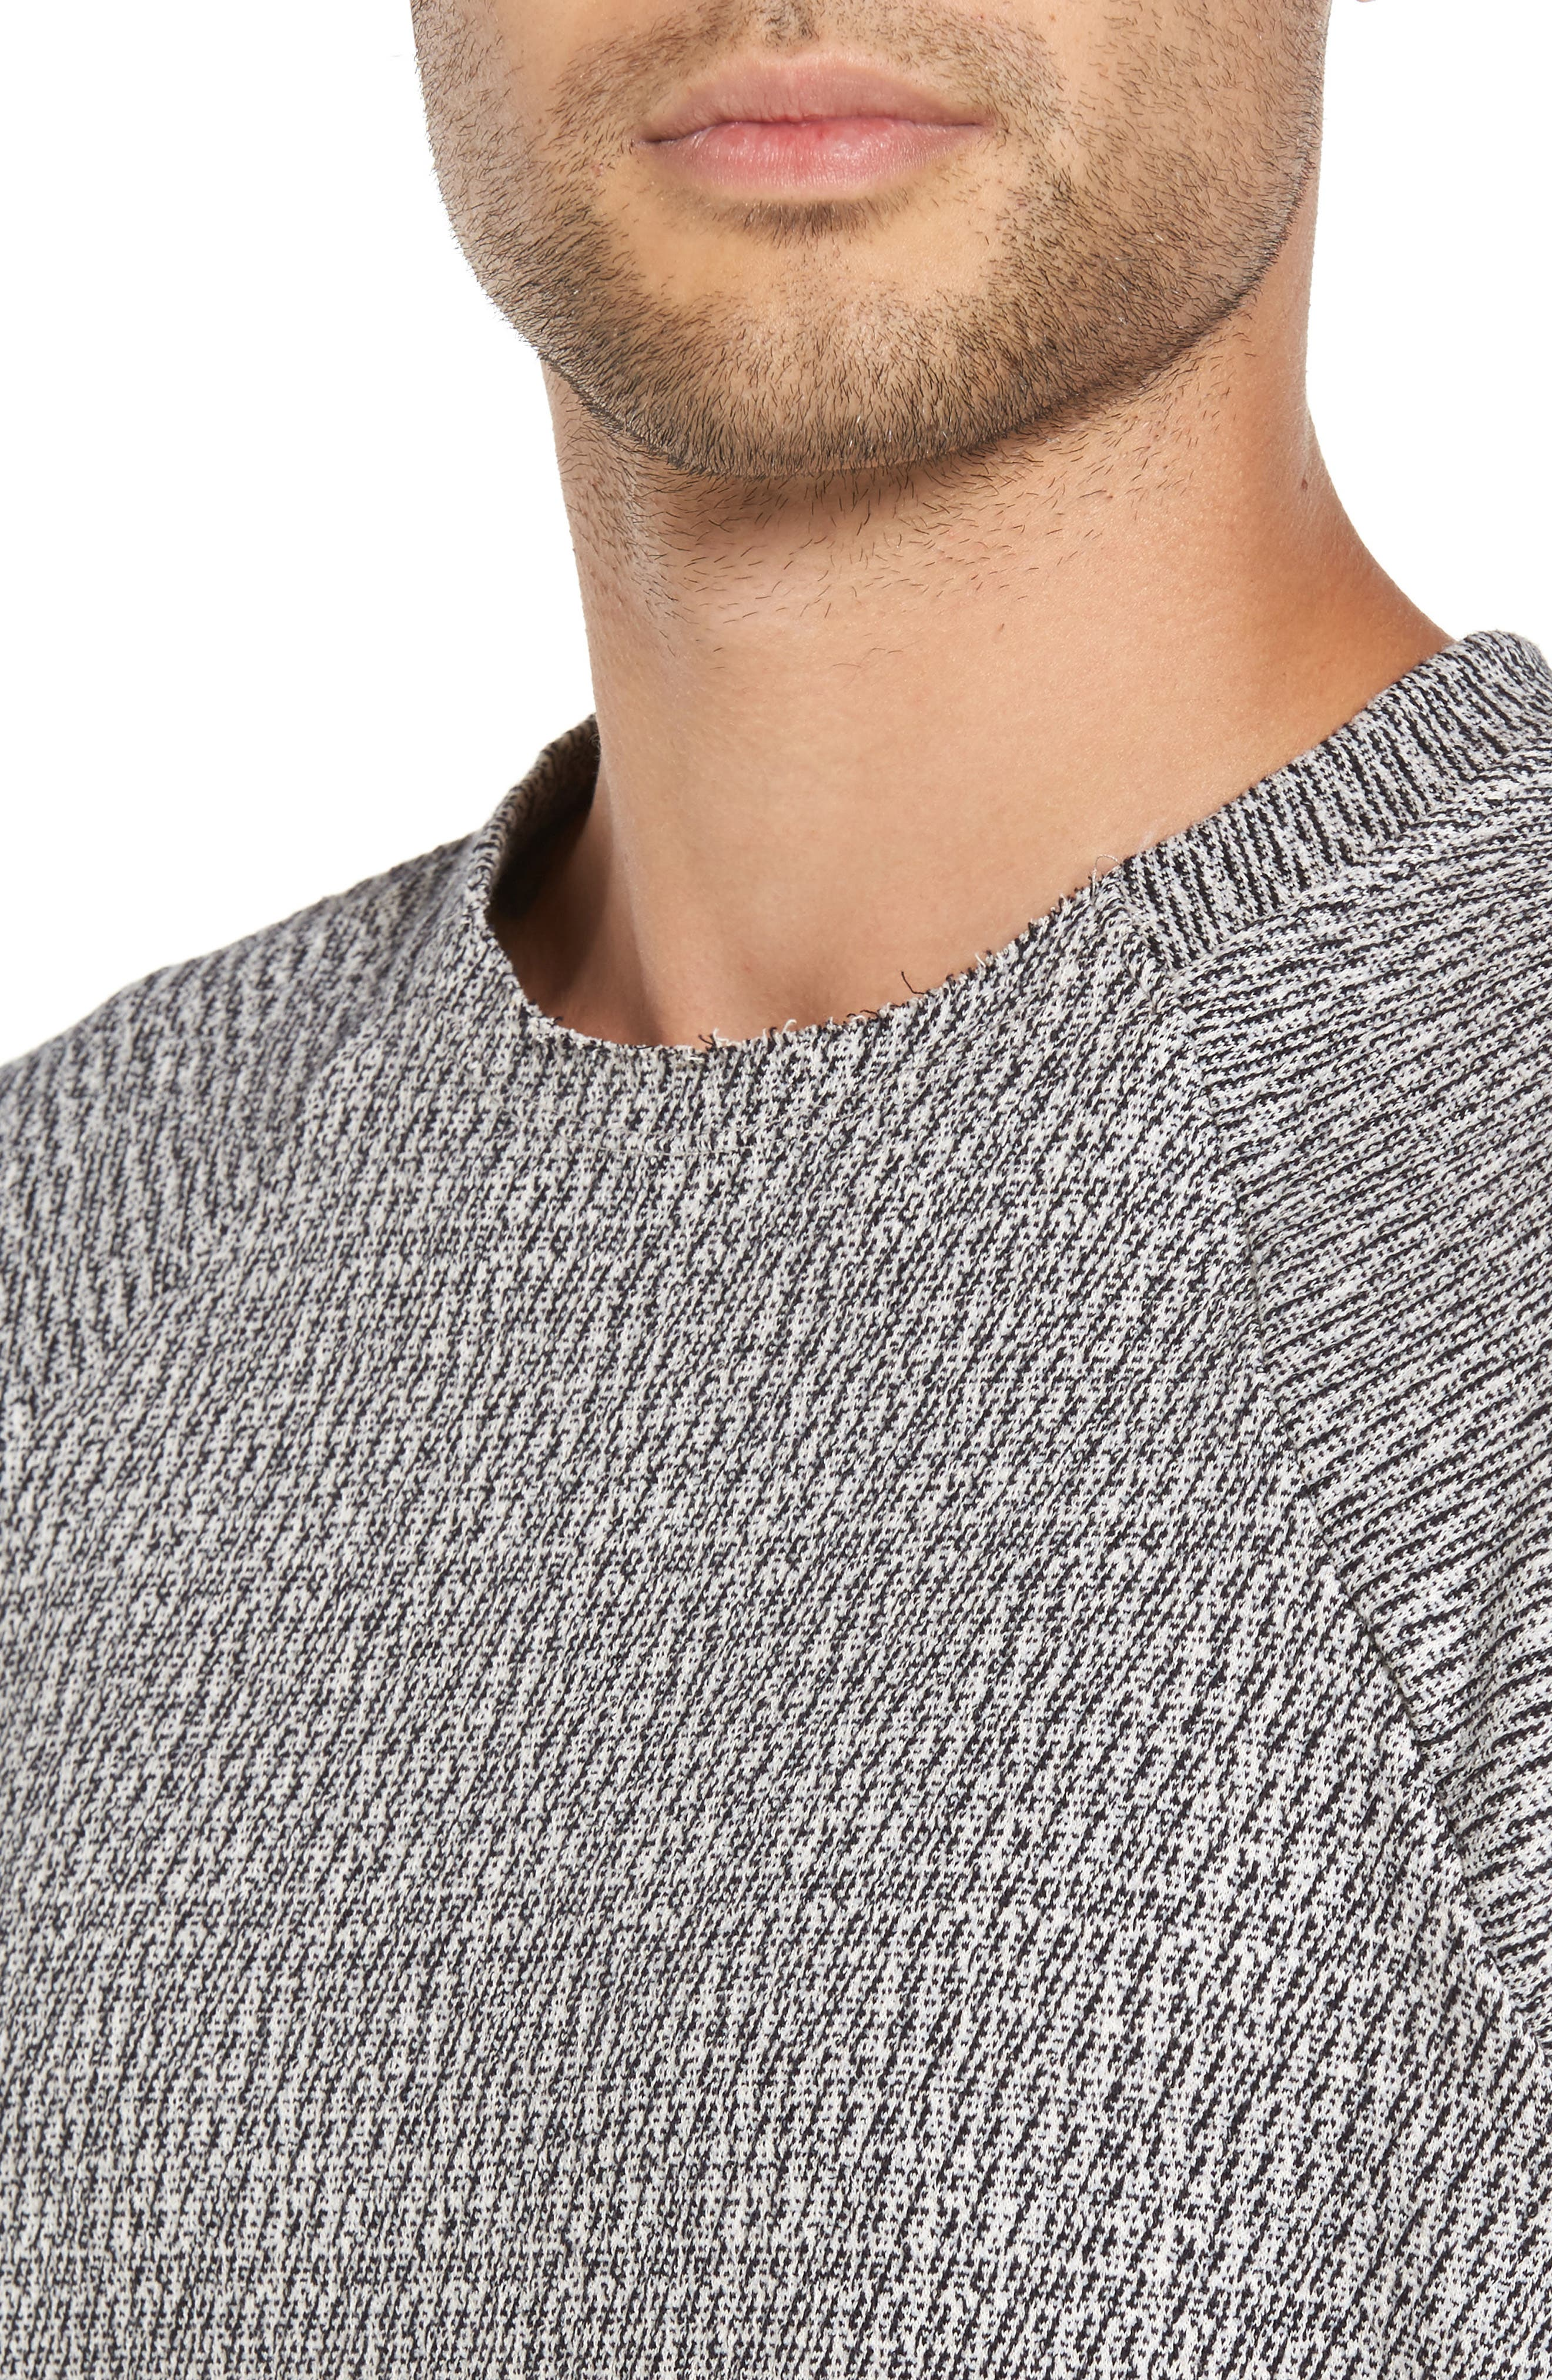 Double Layer Crewneck Sweater,                             Alternate thumbnail 4, color,                             020